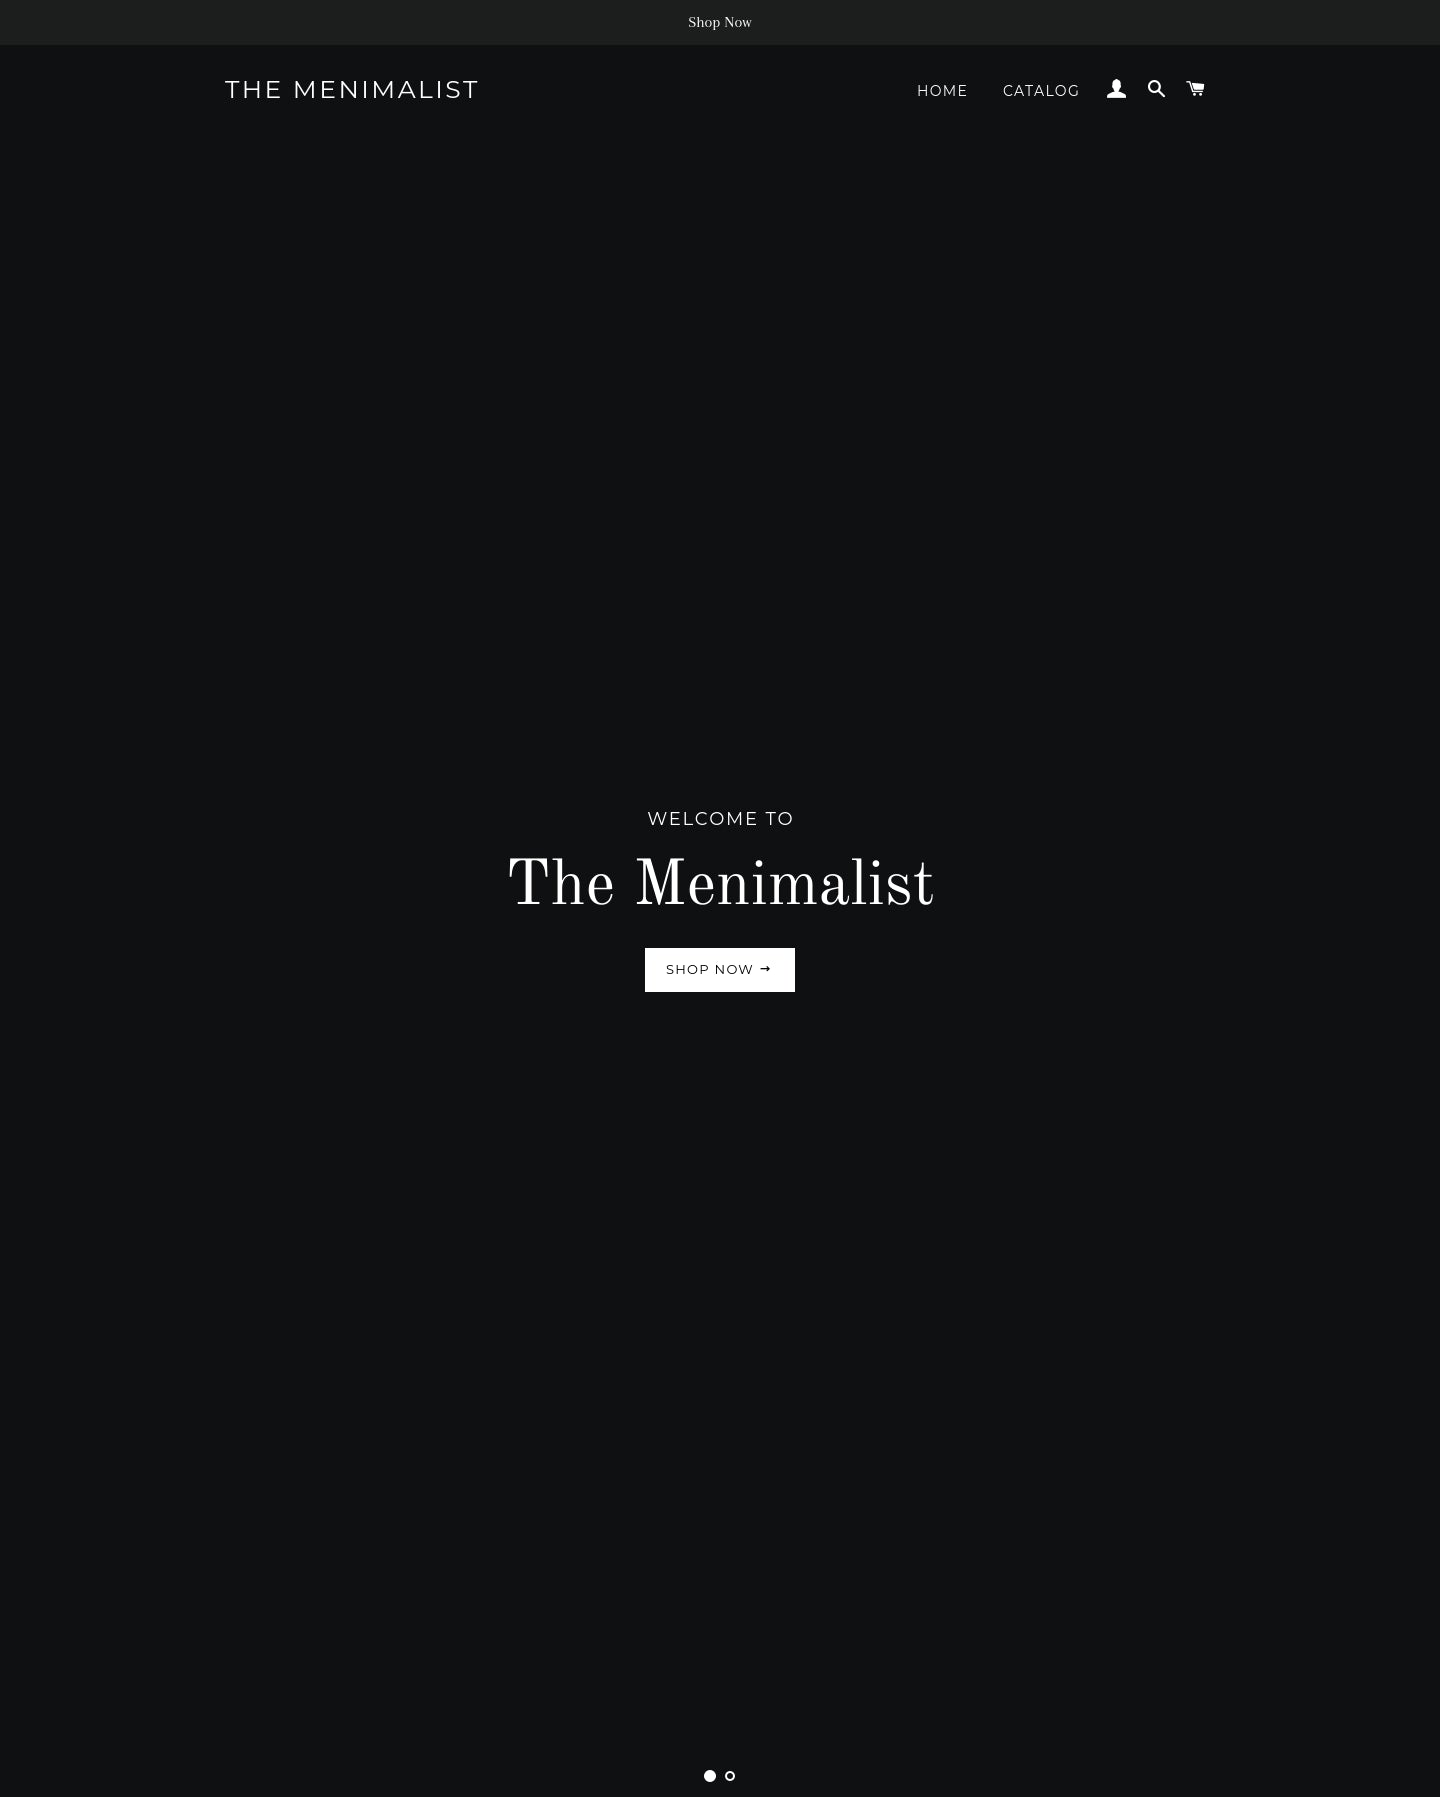 The Menimalist Screenshot - 1